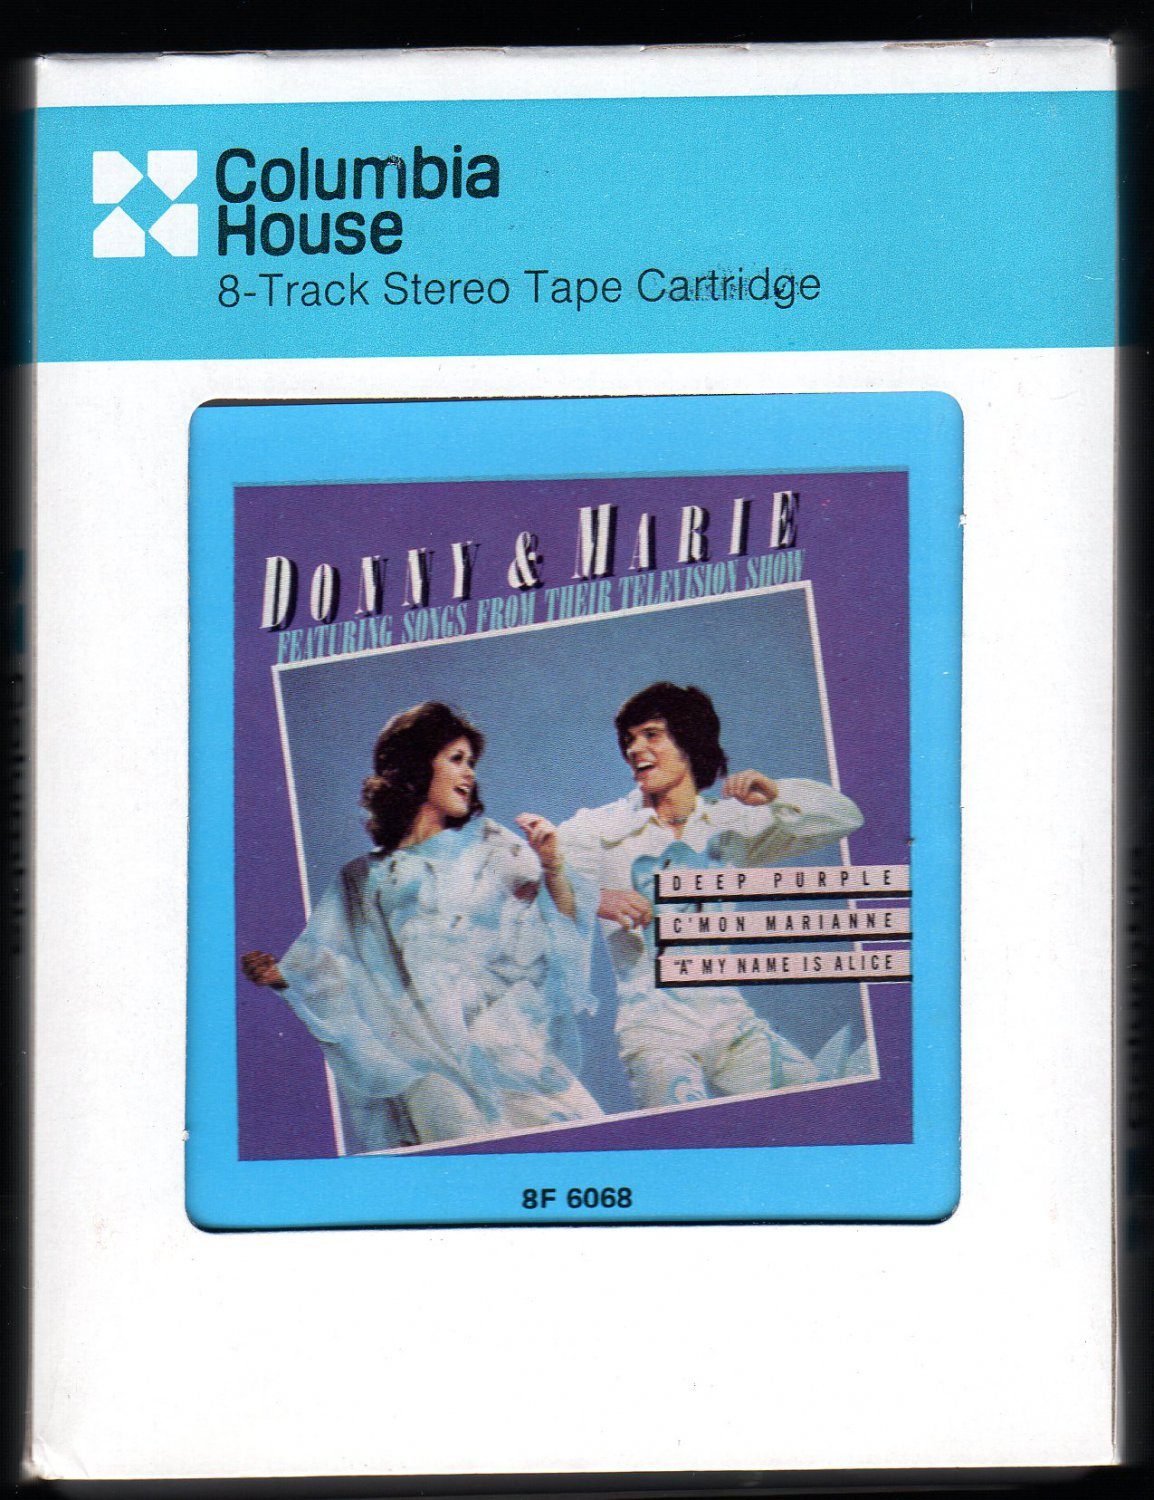 Donnie & Marie Osmond - Donny & Marie 1976 CRC POLYDOR A4 8-TRACK TAPE